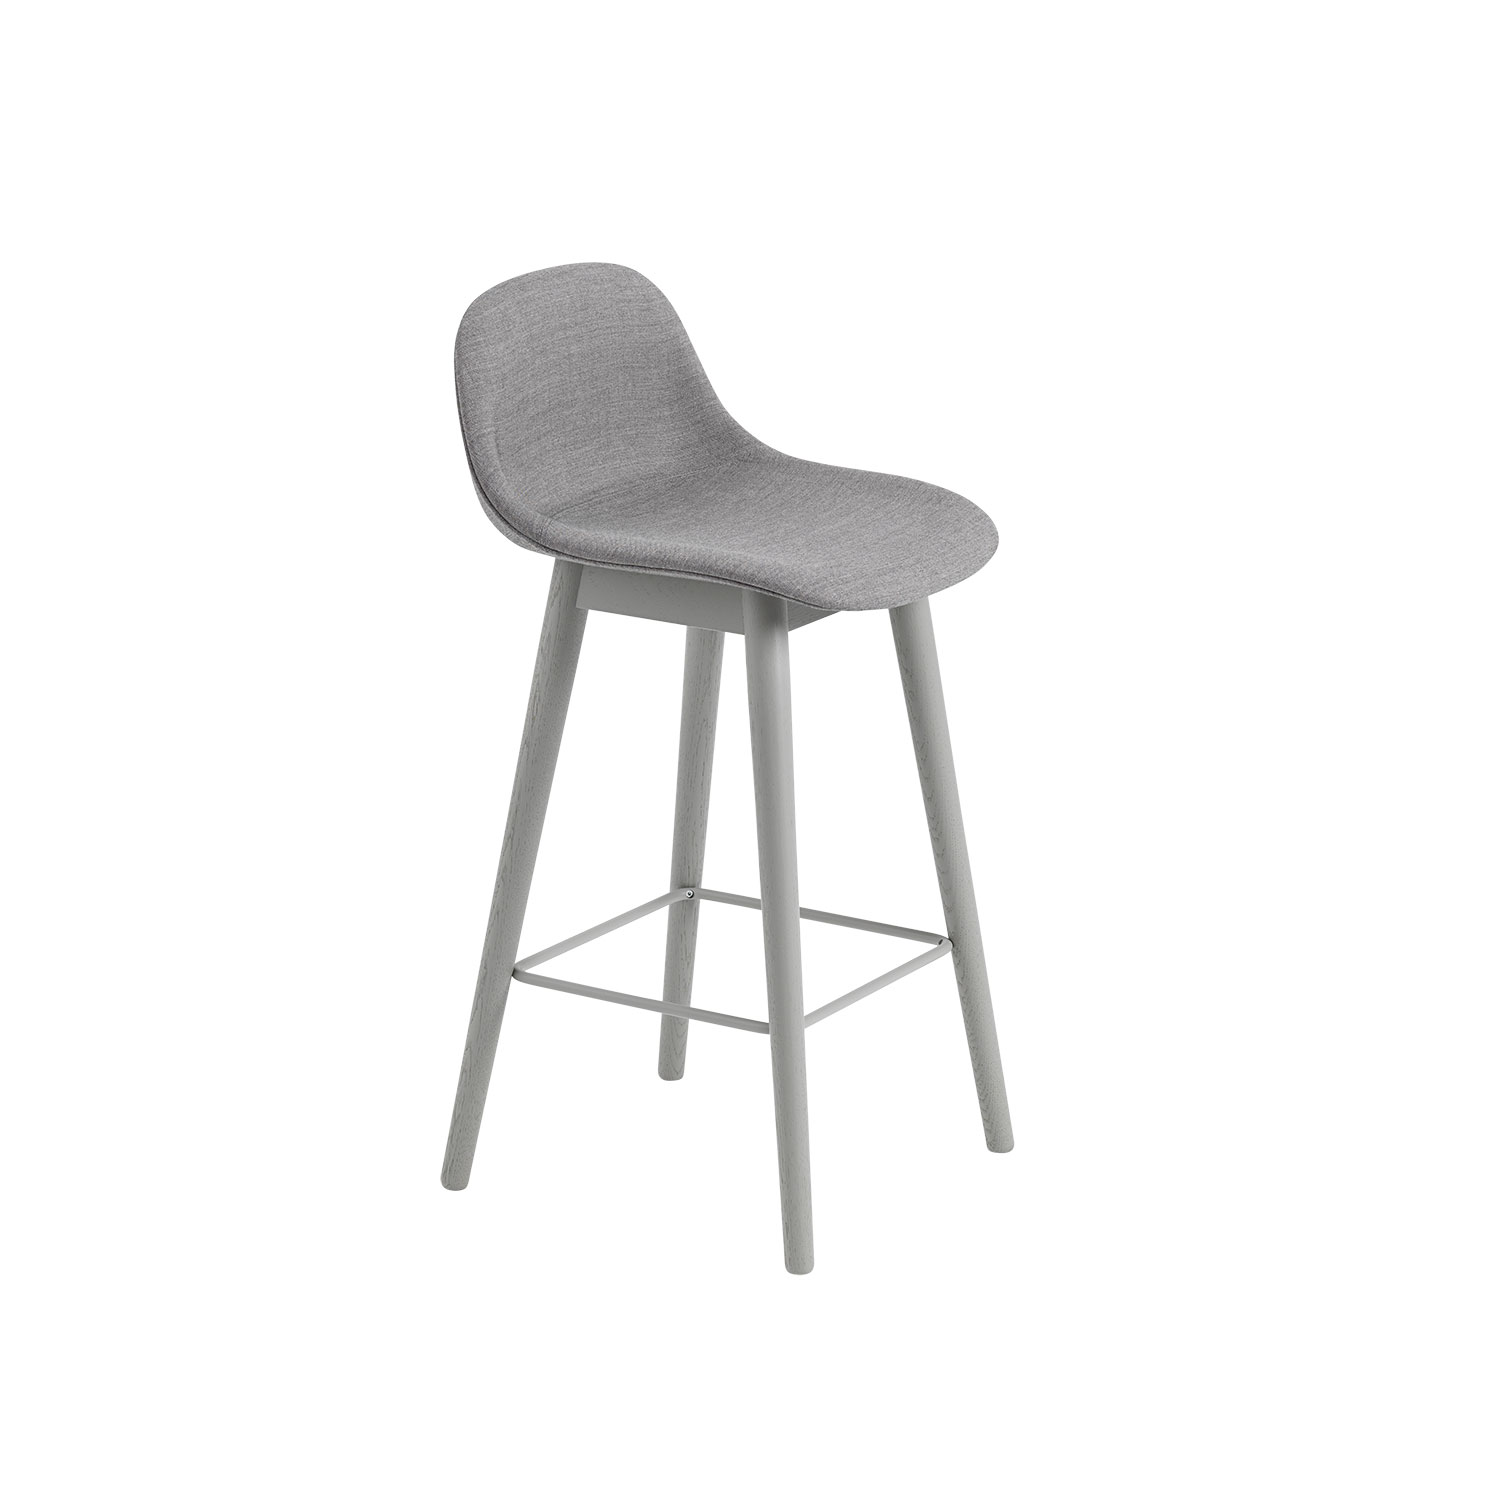 Fiber Wood bar stool w.back, grå/remix133